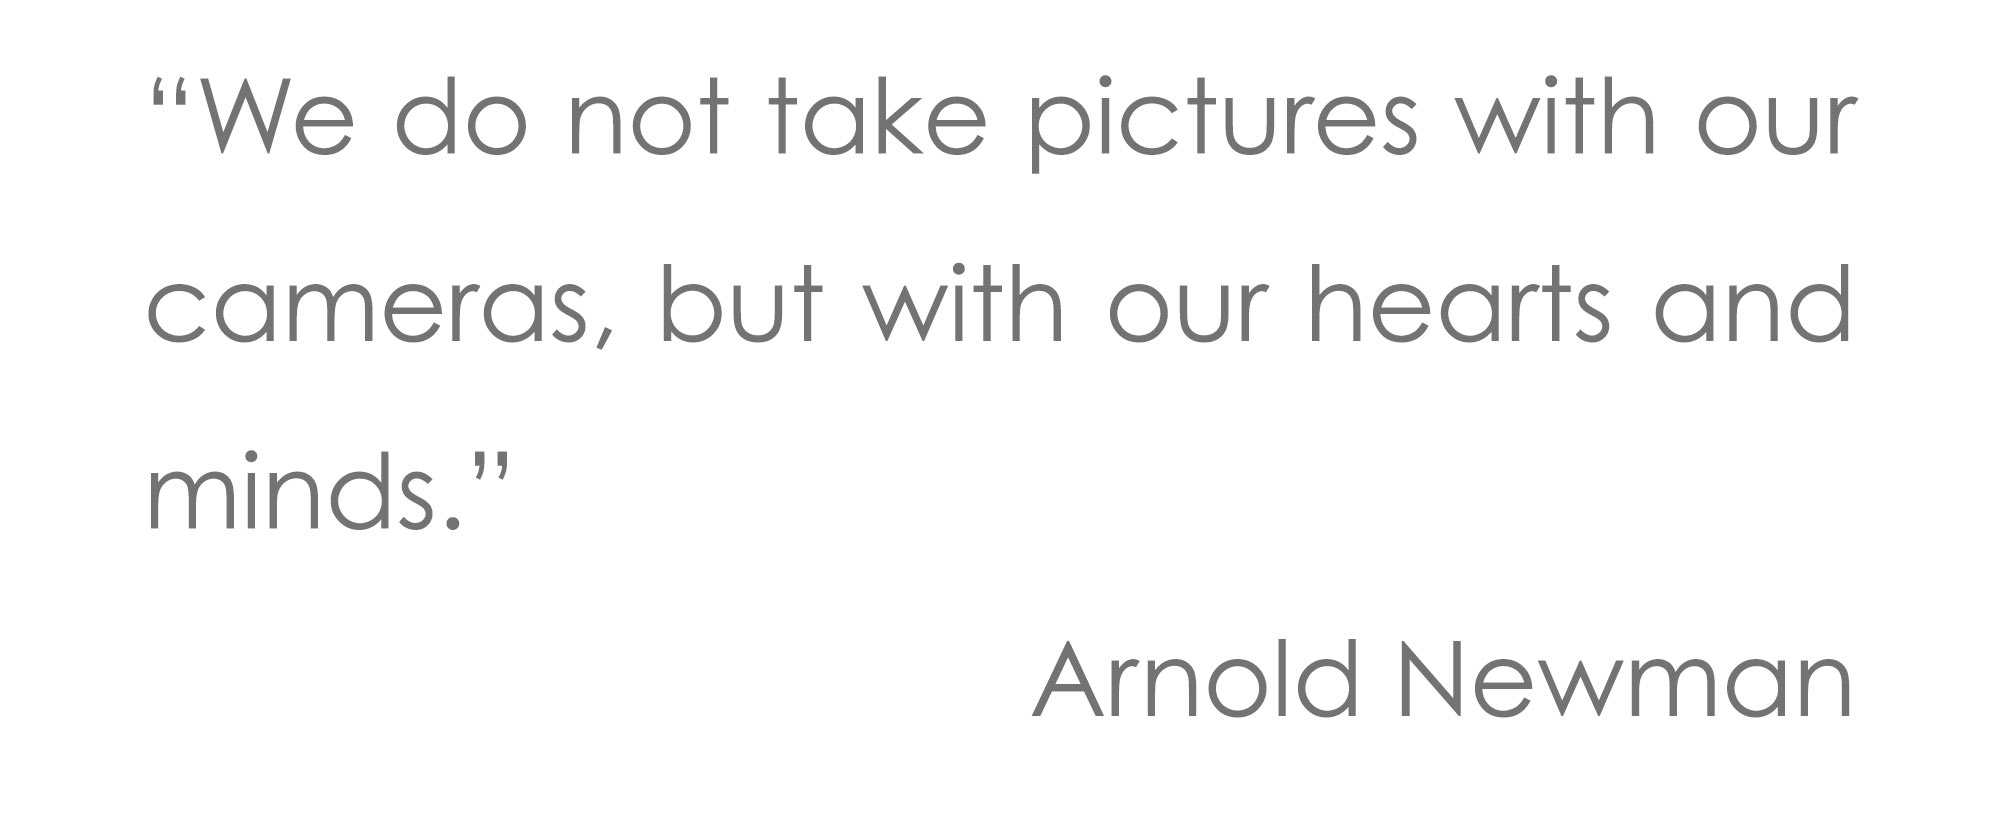 Arnold-Newman-quote-25pt-text.jpg